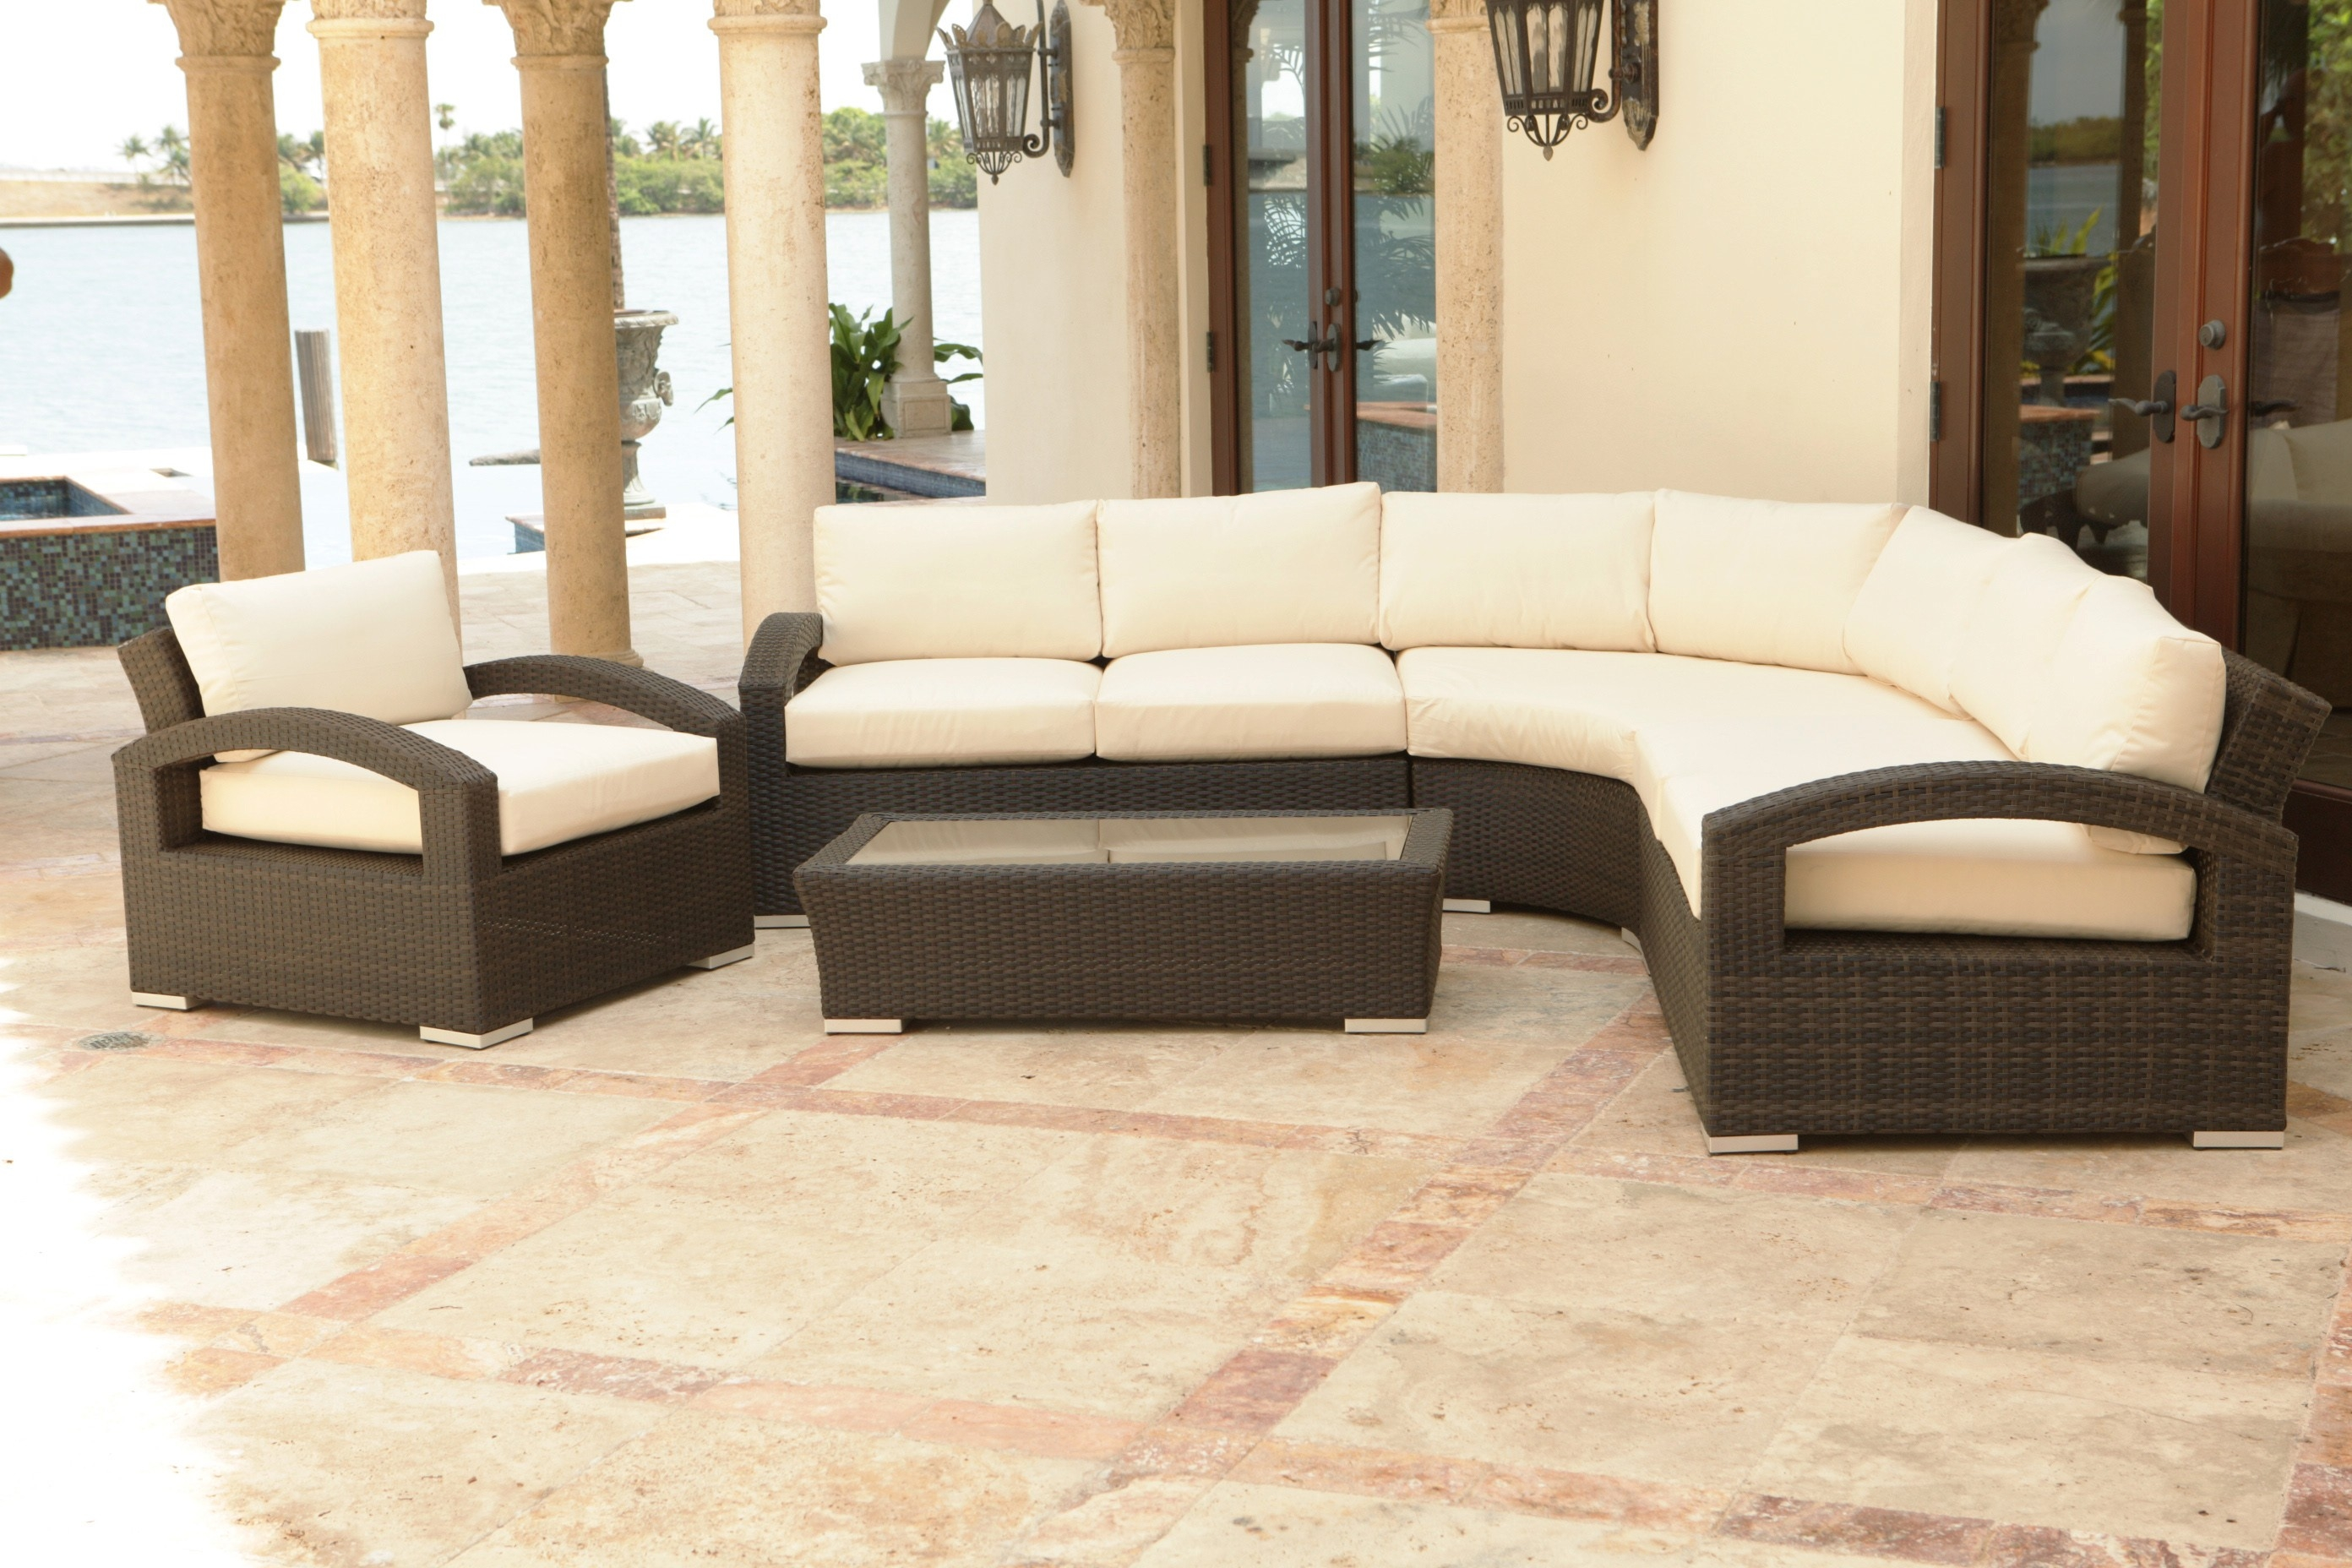 Living Room Splendiferous Saddle Brown Leather Sectional Couch Intended For Durable Sectional Sofa (Image 12 of 15)